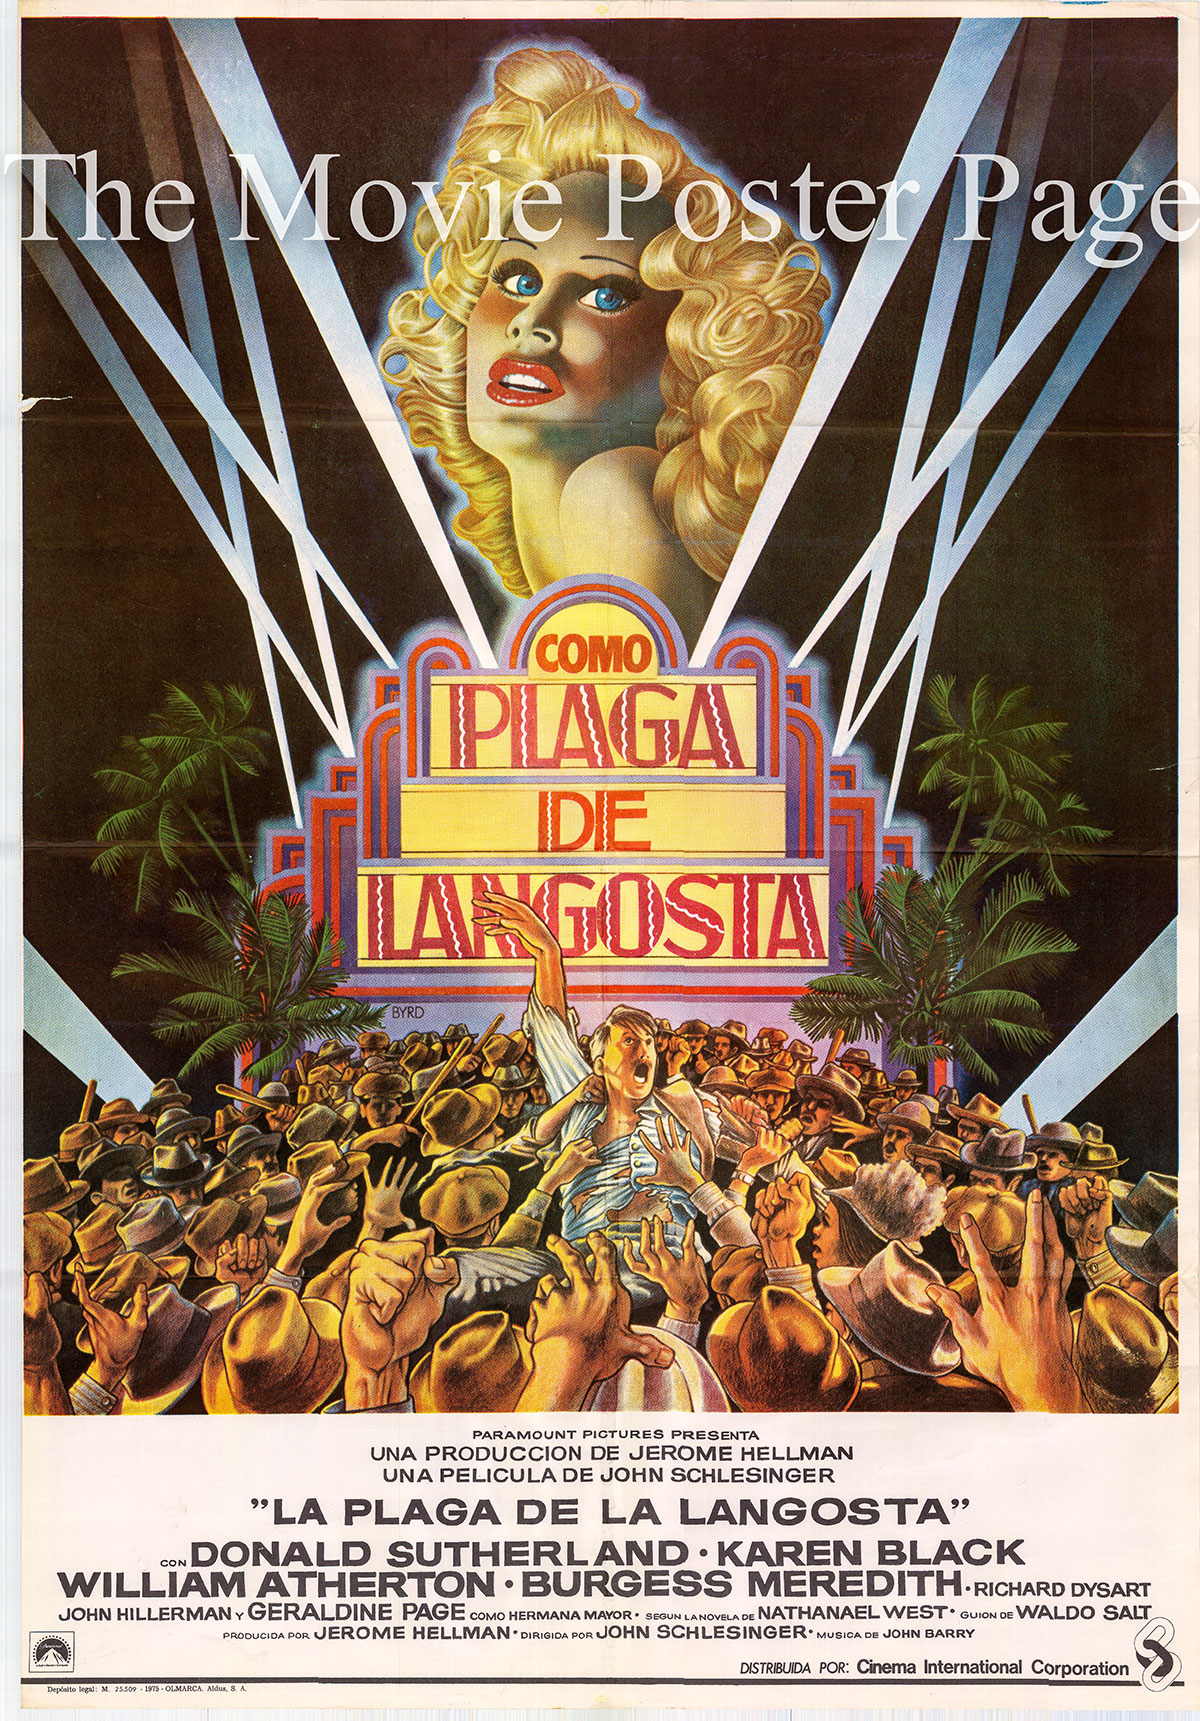 Pictured is a Spanish one-sheet poster for the 1975 John Schlesinger film The Day of the Locust starring Donald Sutherland.